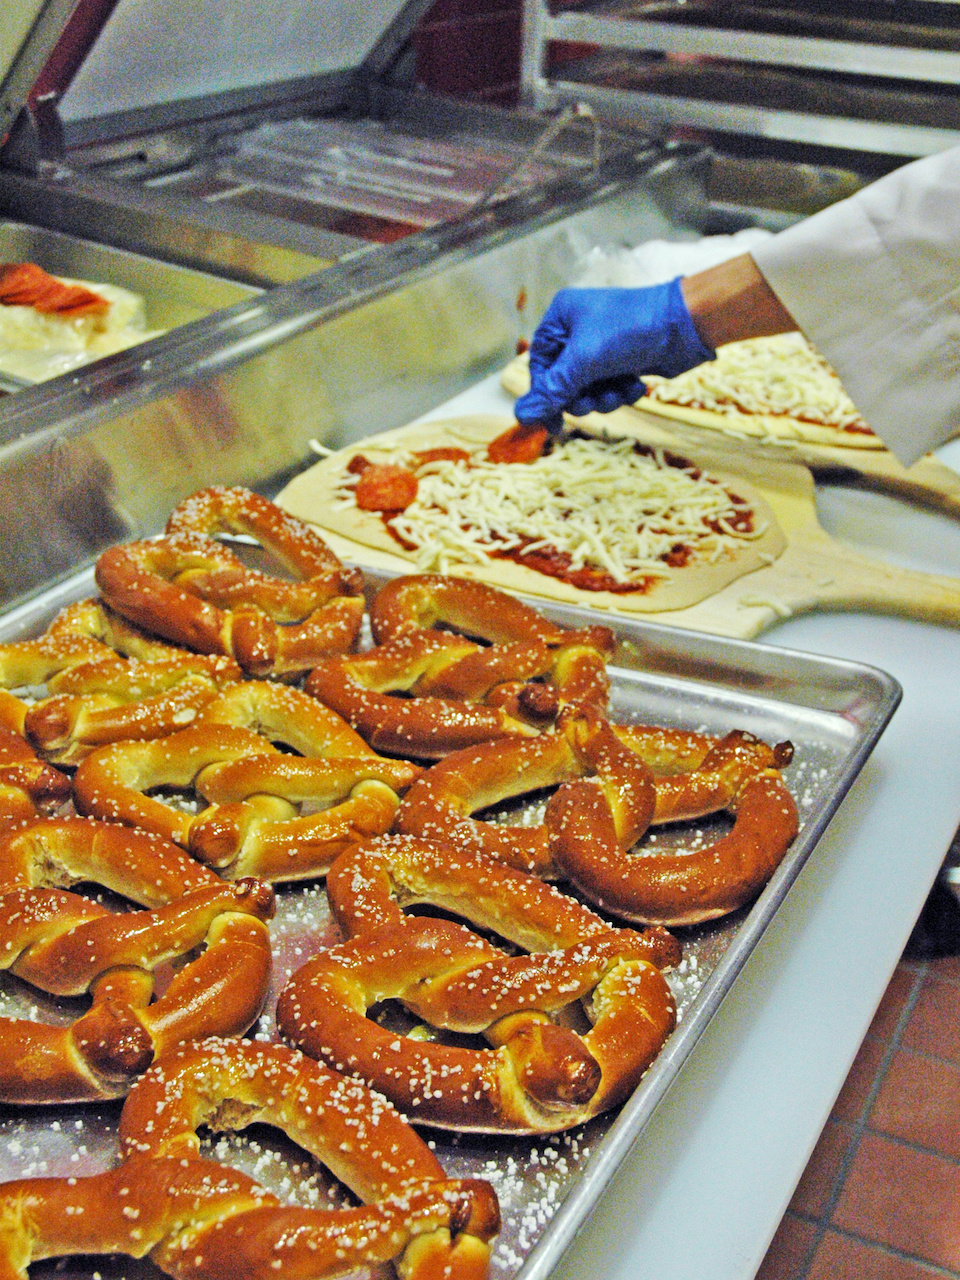 In the Canteen kitchen, pizza and pretzels are prepared for hungry moviegoers.